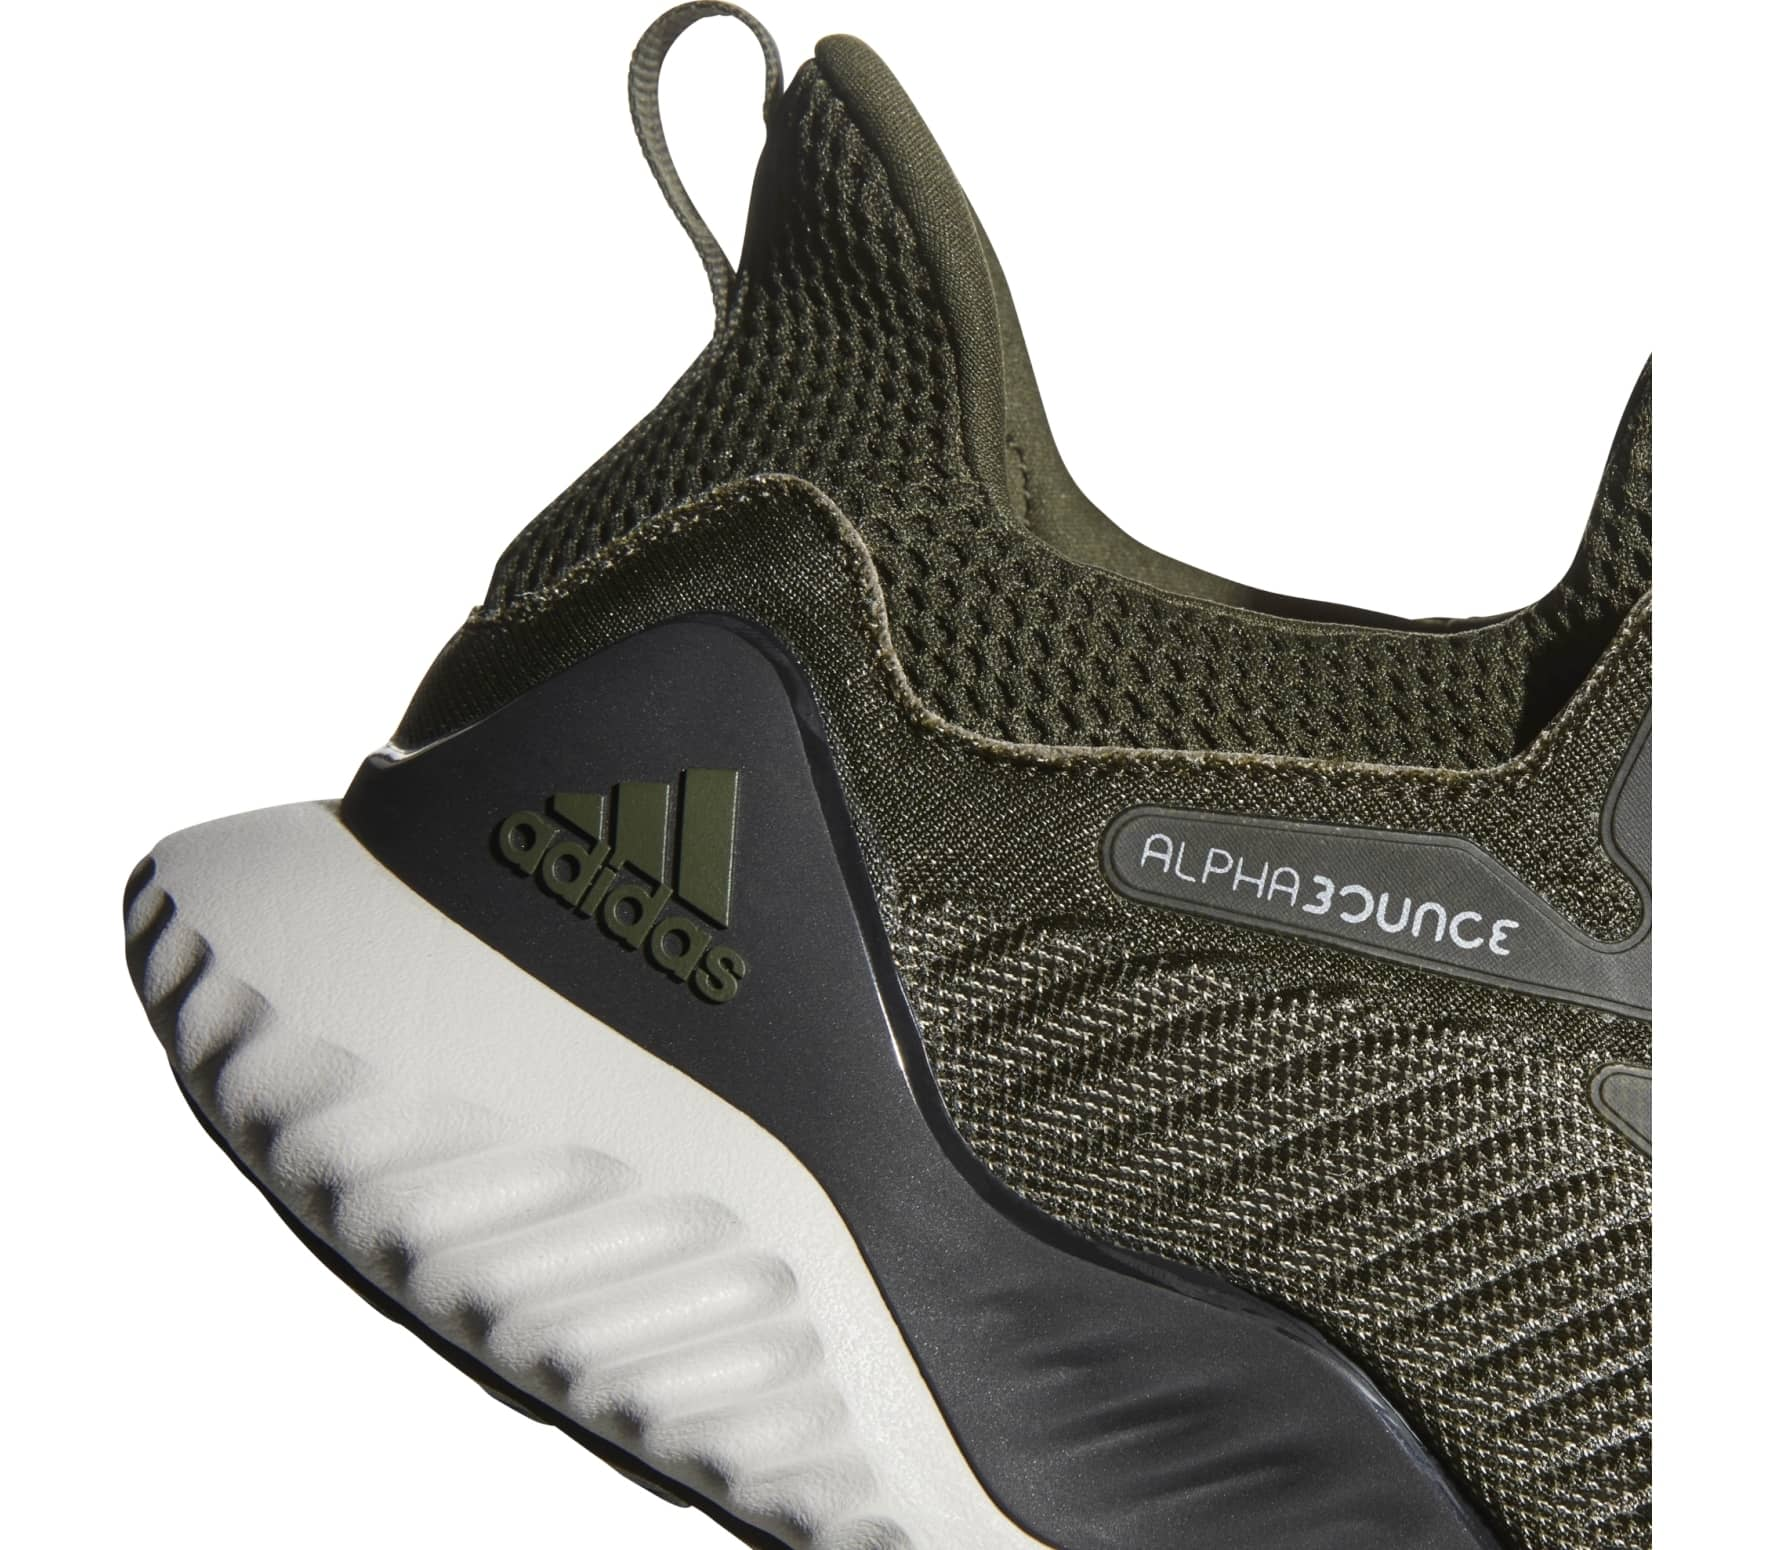 official photos aa709 67eb3 Adidas - Alphabounce Beyond scarpe running da uomo (verde scuro)